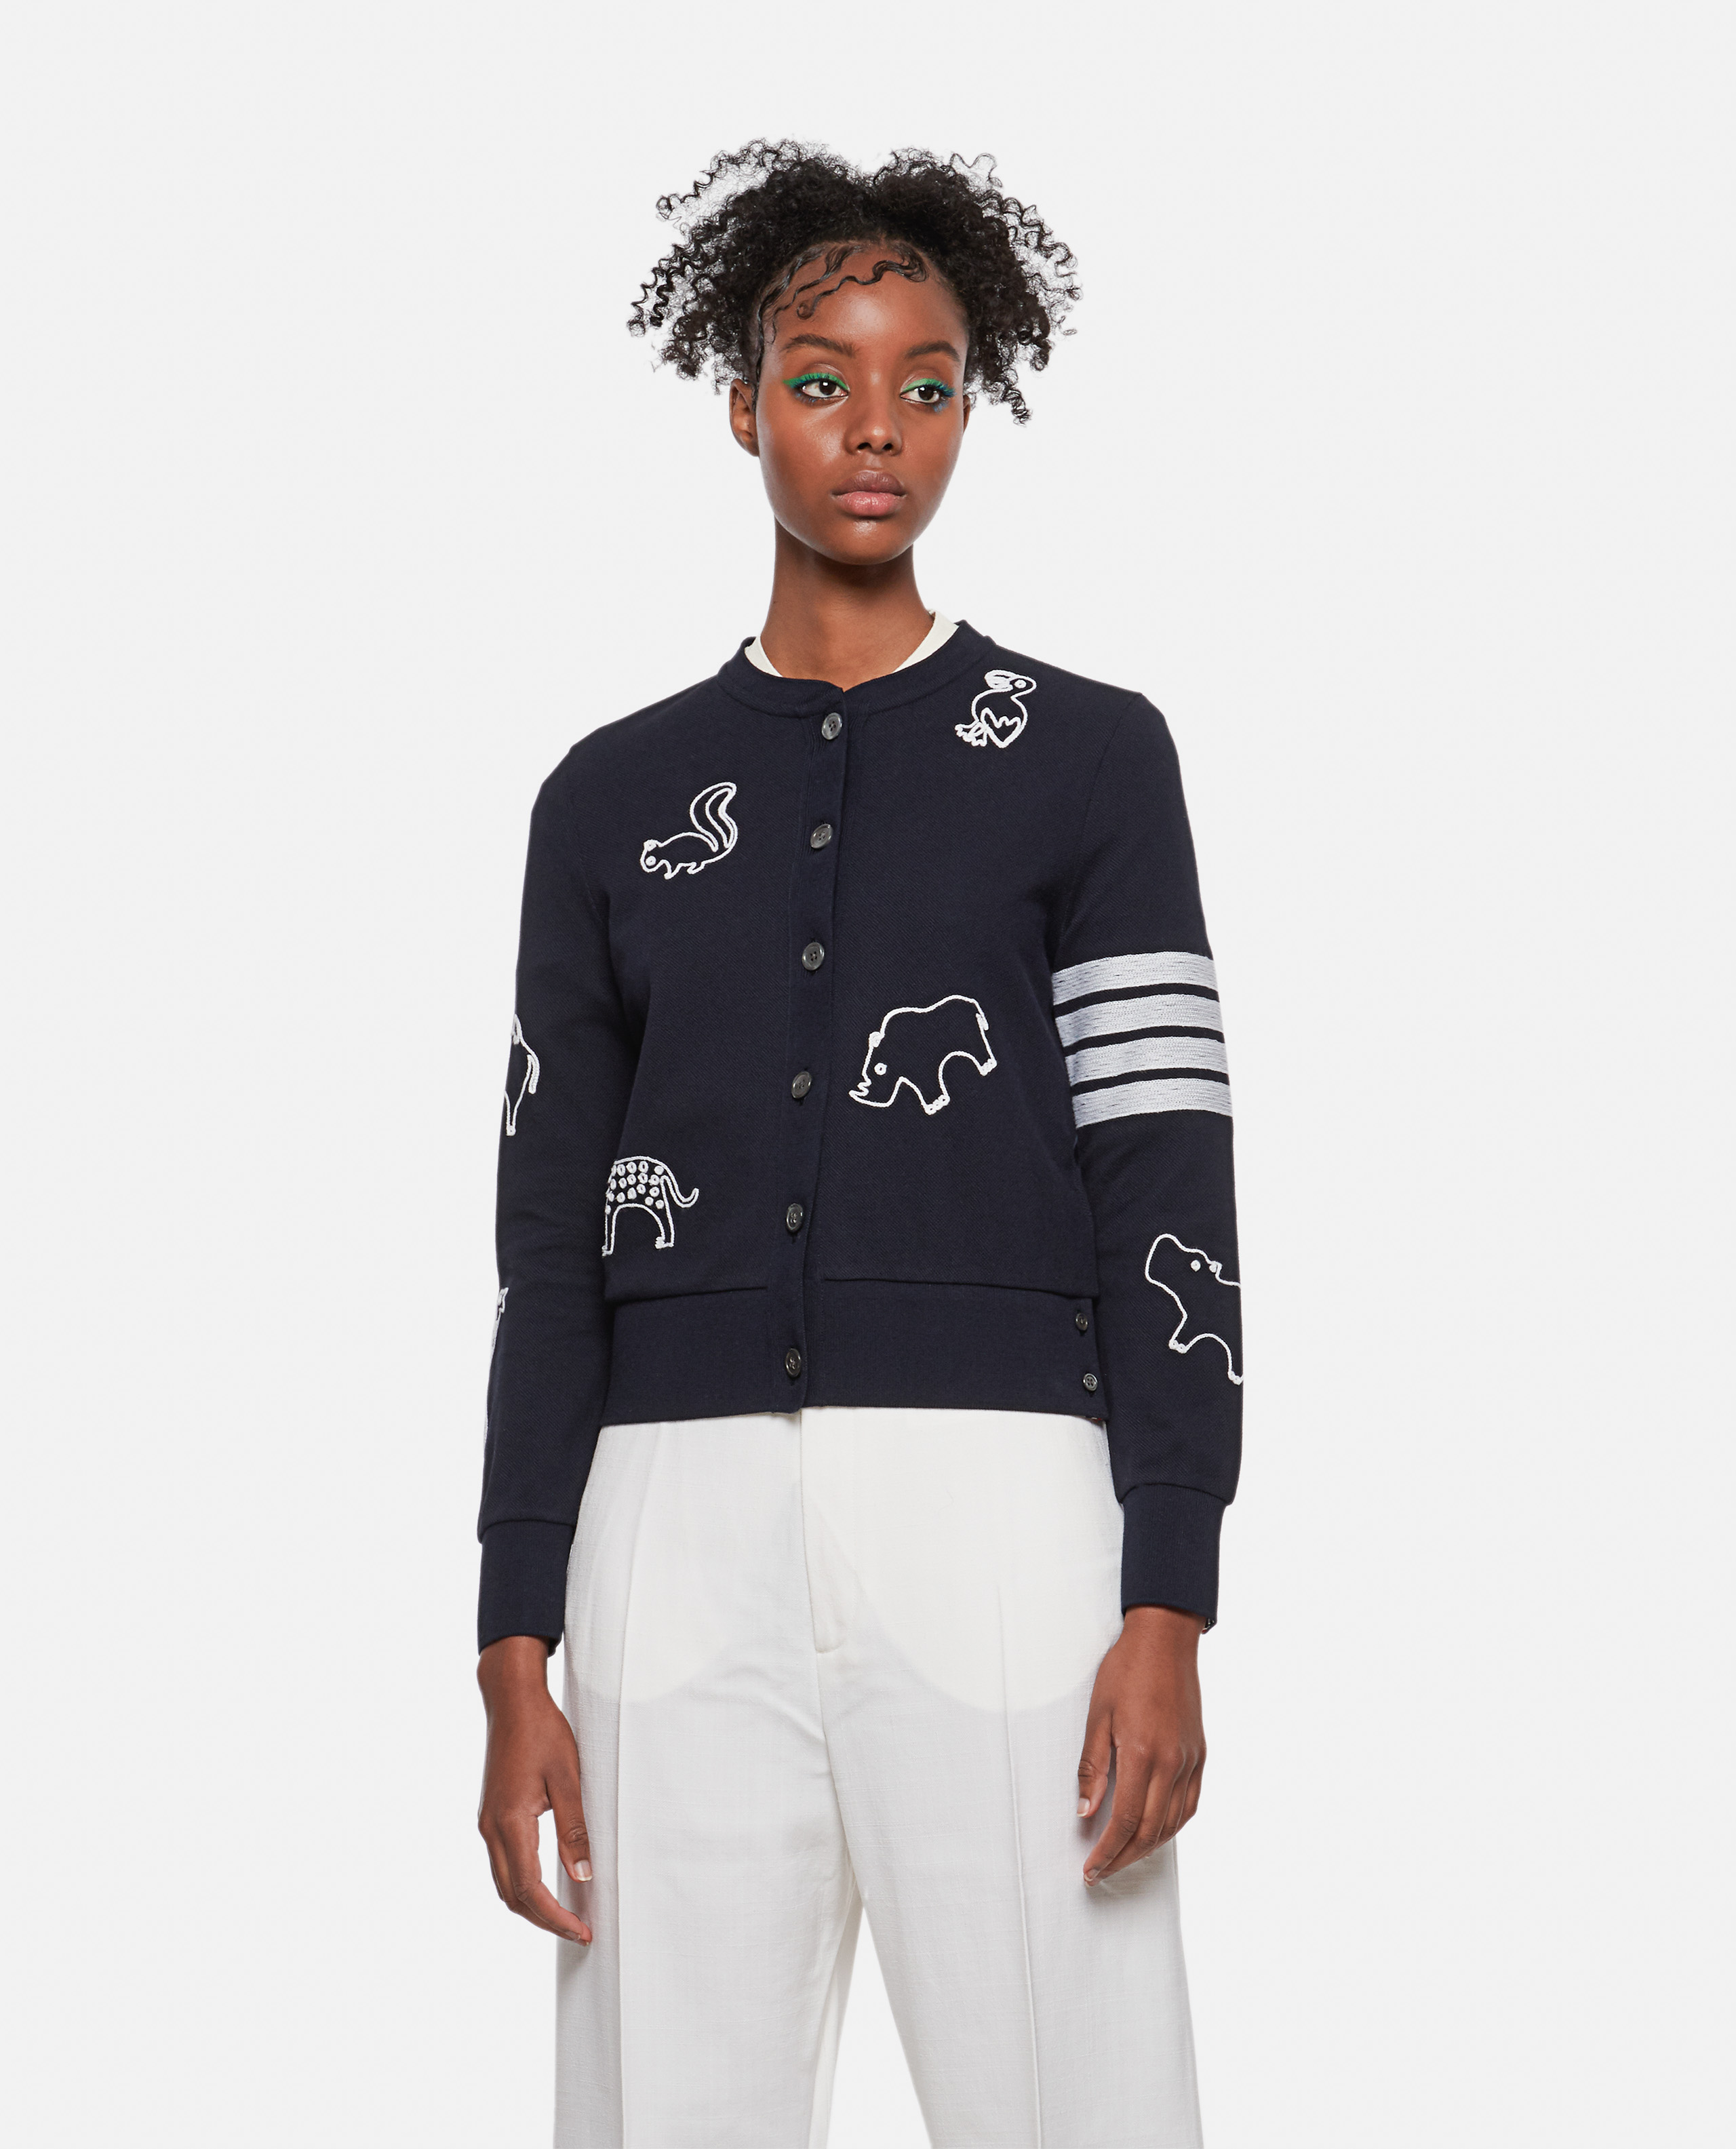 Cotton pique cardigan with animal embroidery